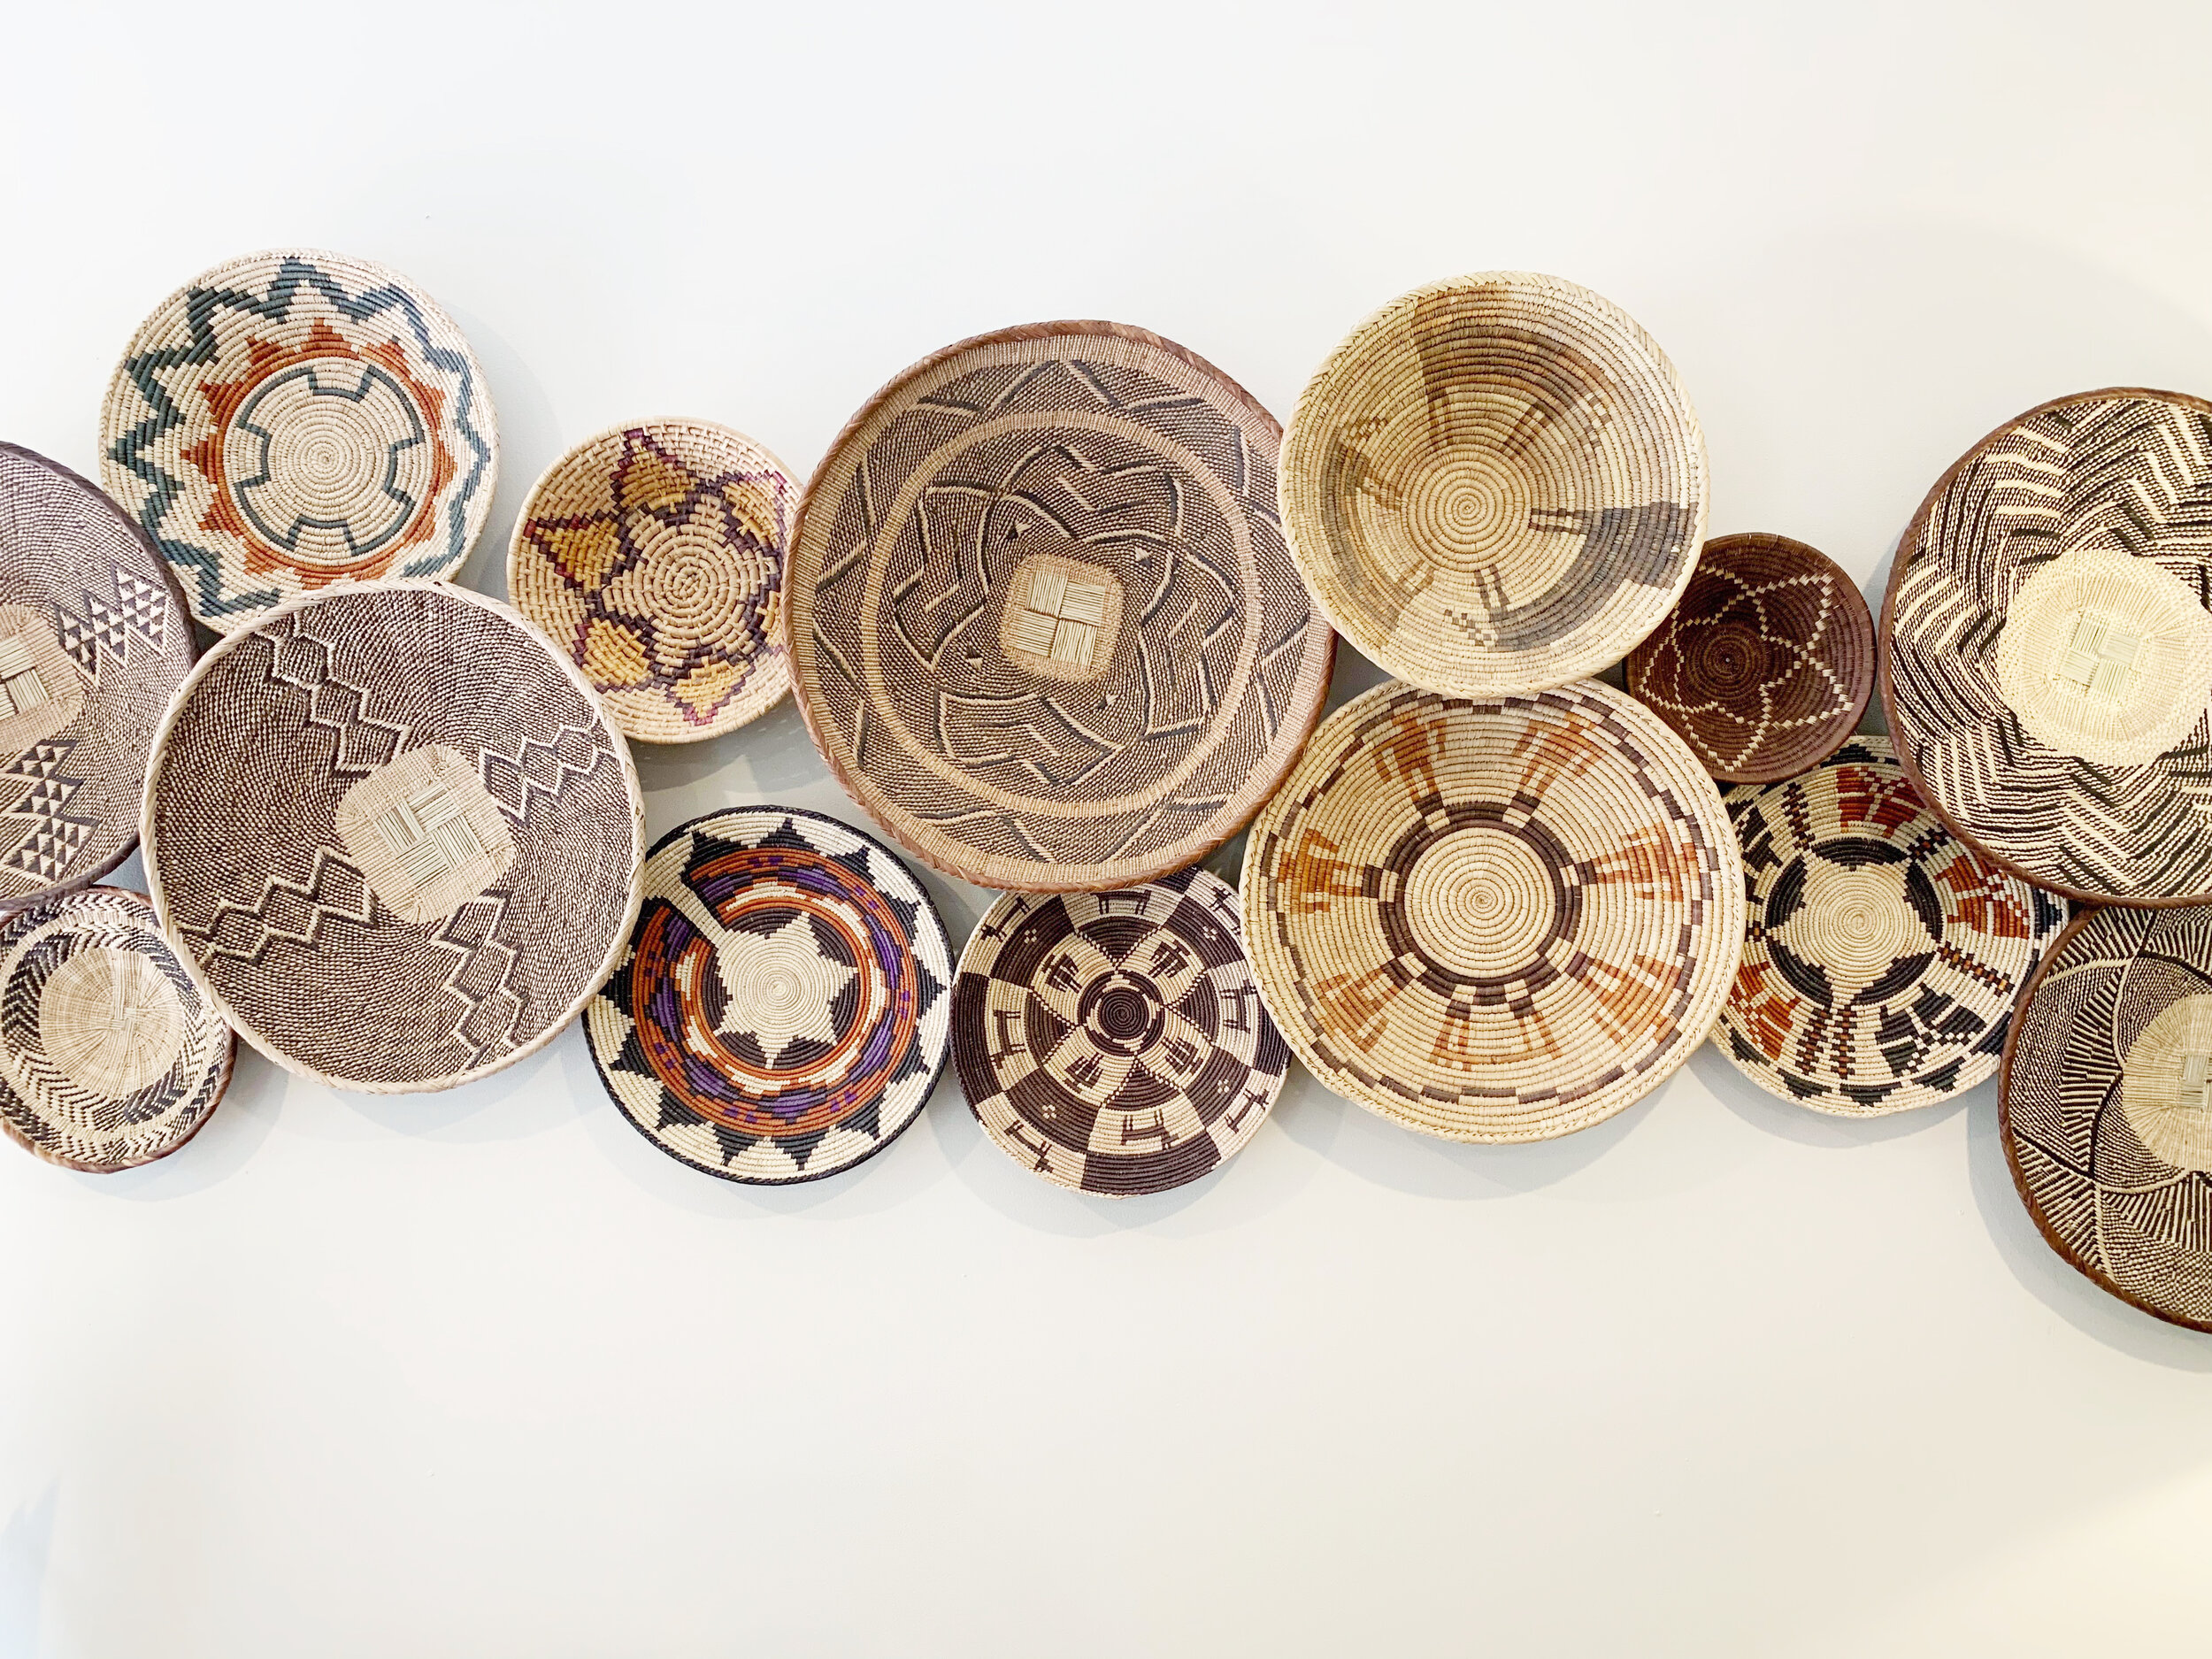 My collection of both Native American and African baskets creates a textural decorative piece.